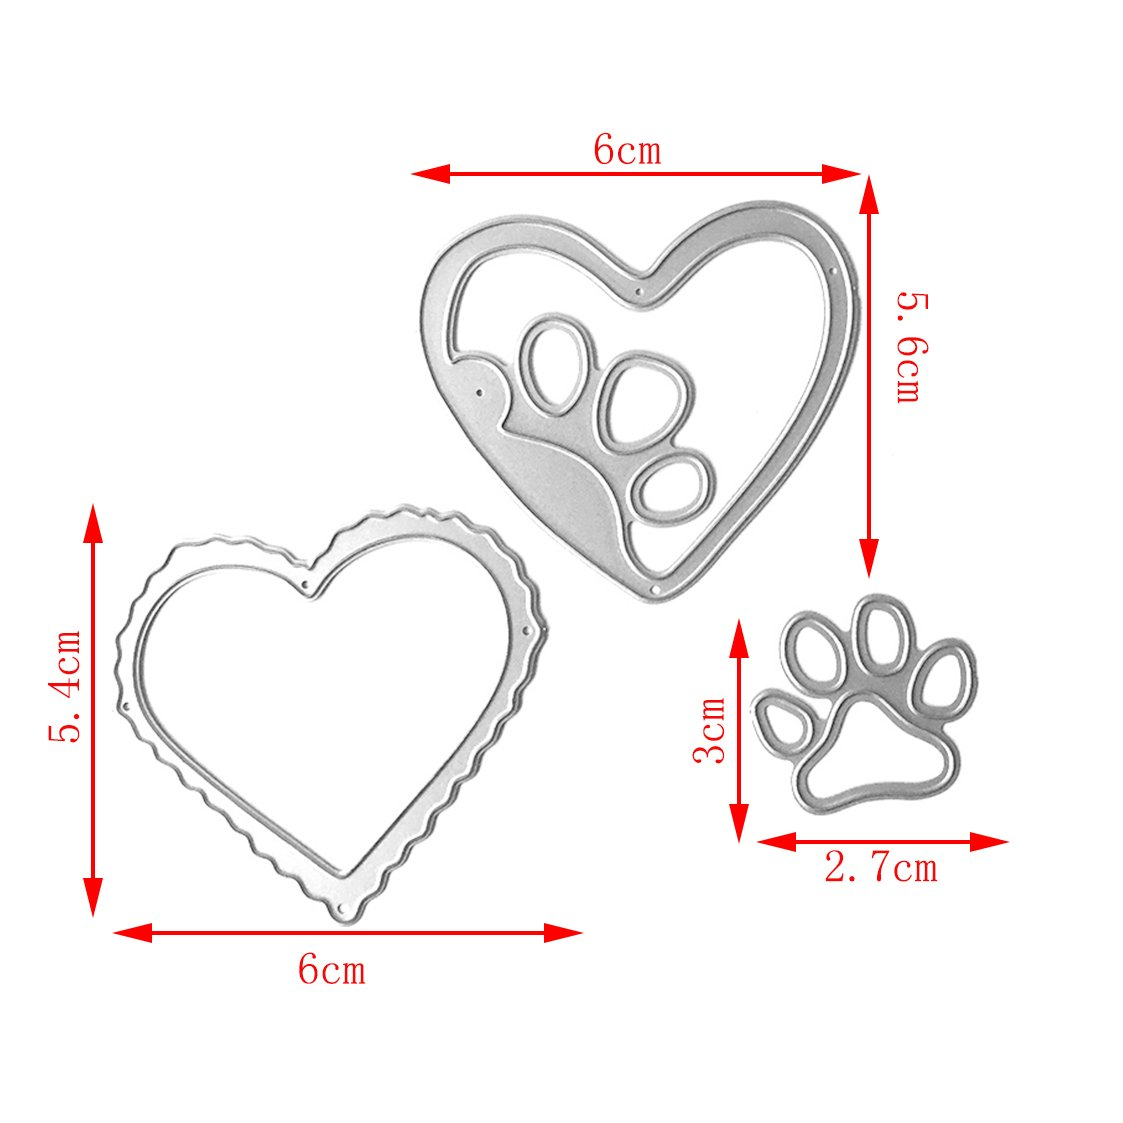 Mimgo Metal Steel Embossing Cutting Dies Stencil Kit For Handmade DIY Scrapbooking Paper Card Craft - Love & Dog's Palm by Mimgo (Image #6)